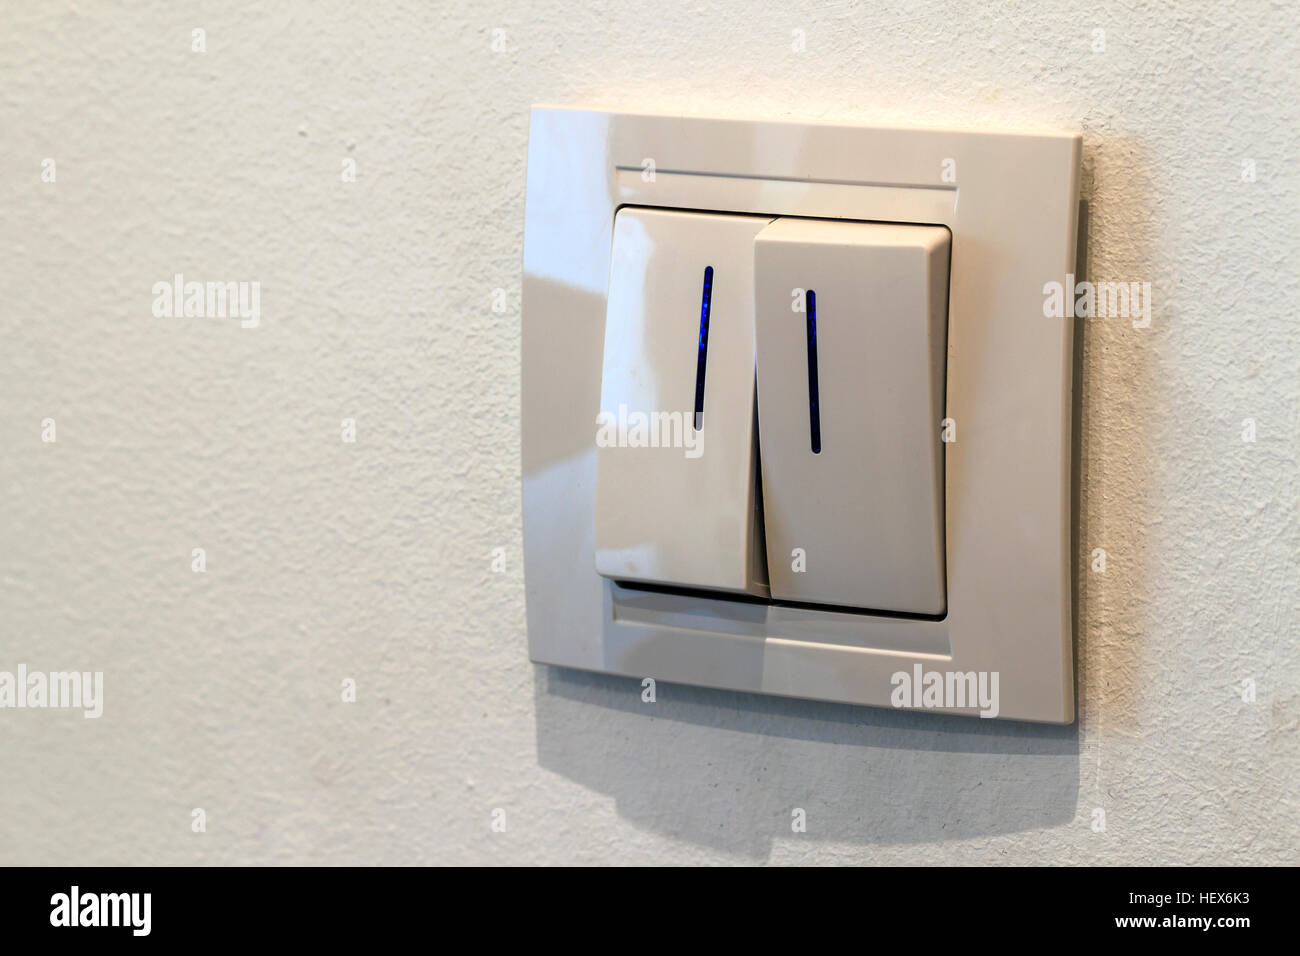 Modern white double light switch on the wall, turn on or turn off ...